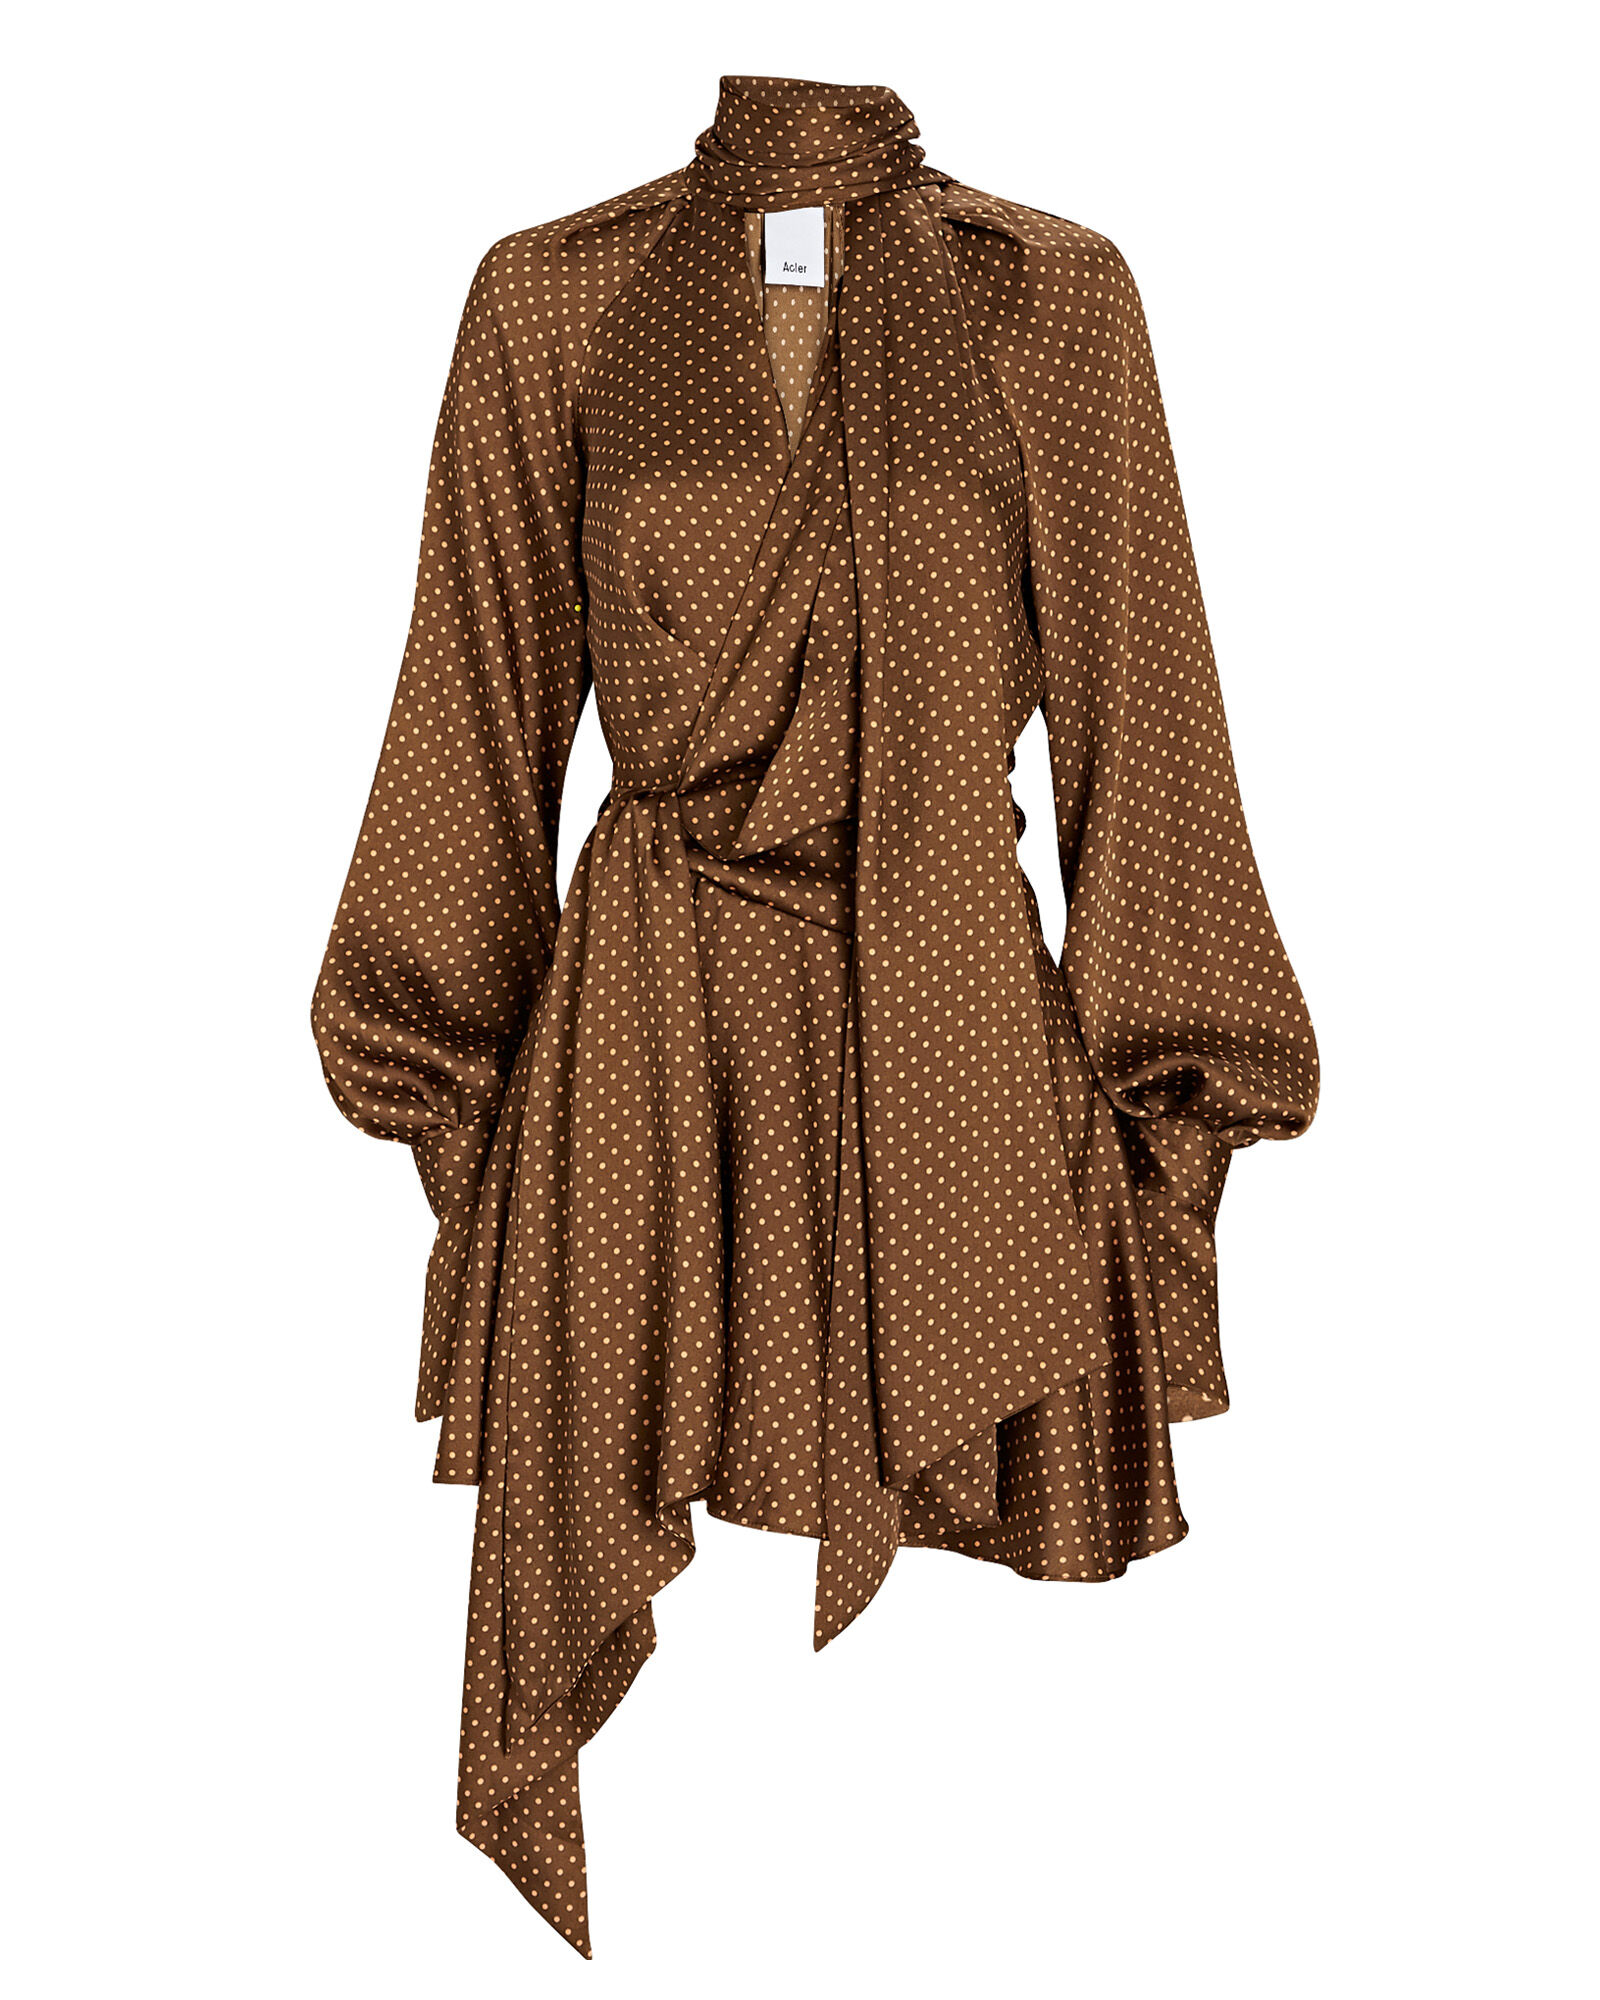 Woolmore Polka Dot Tie-Neck Dress, BROWN, hi-res